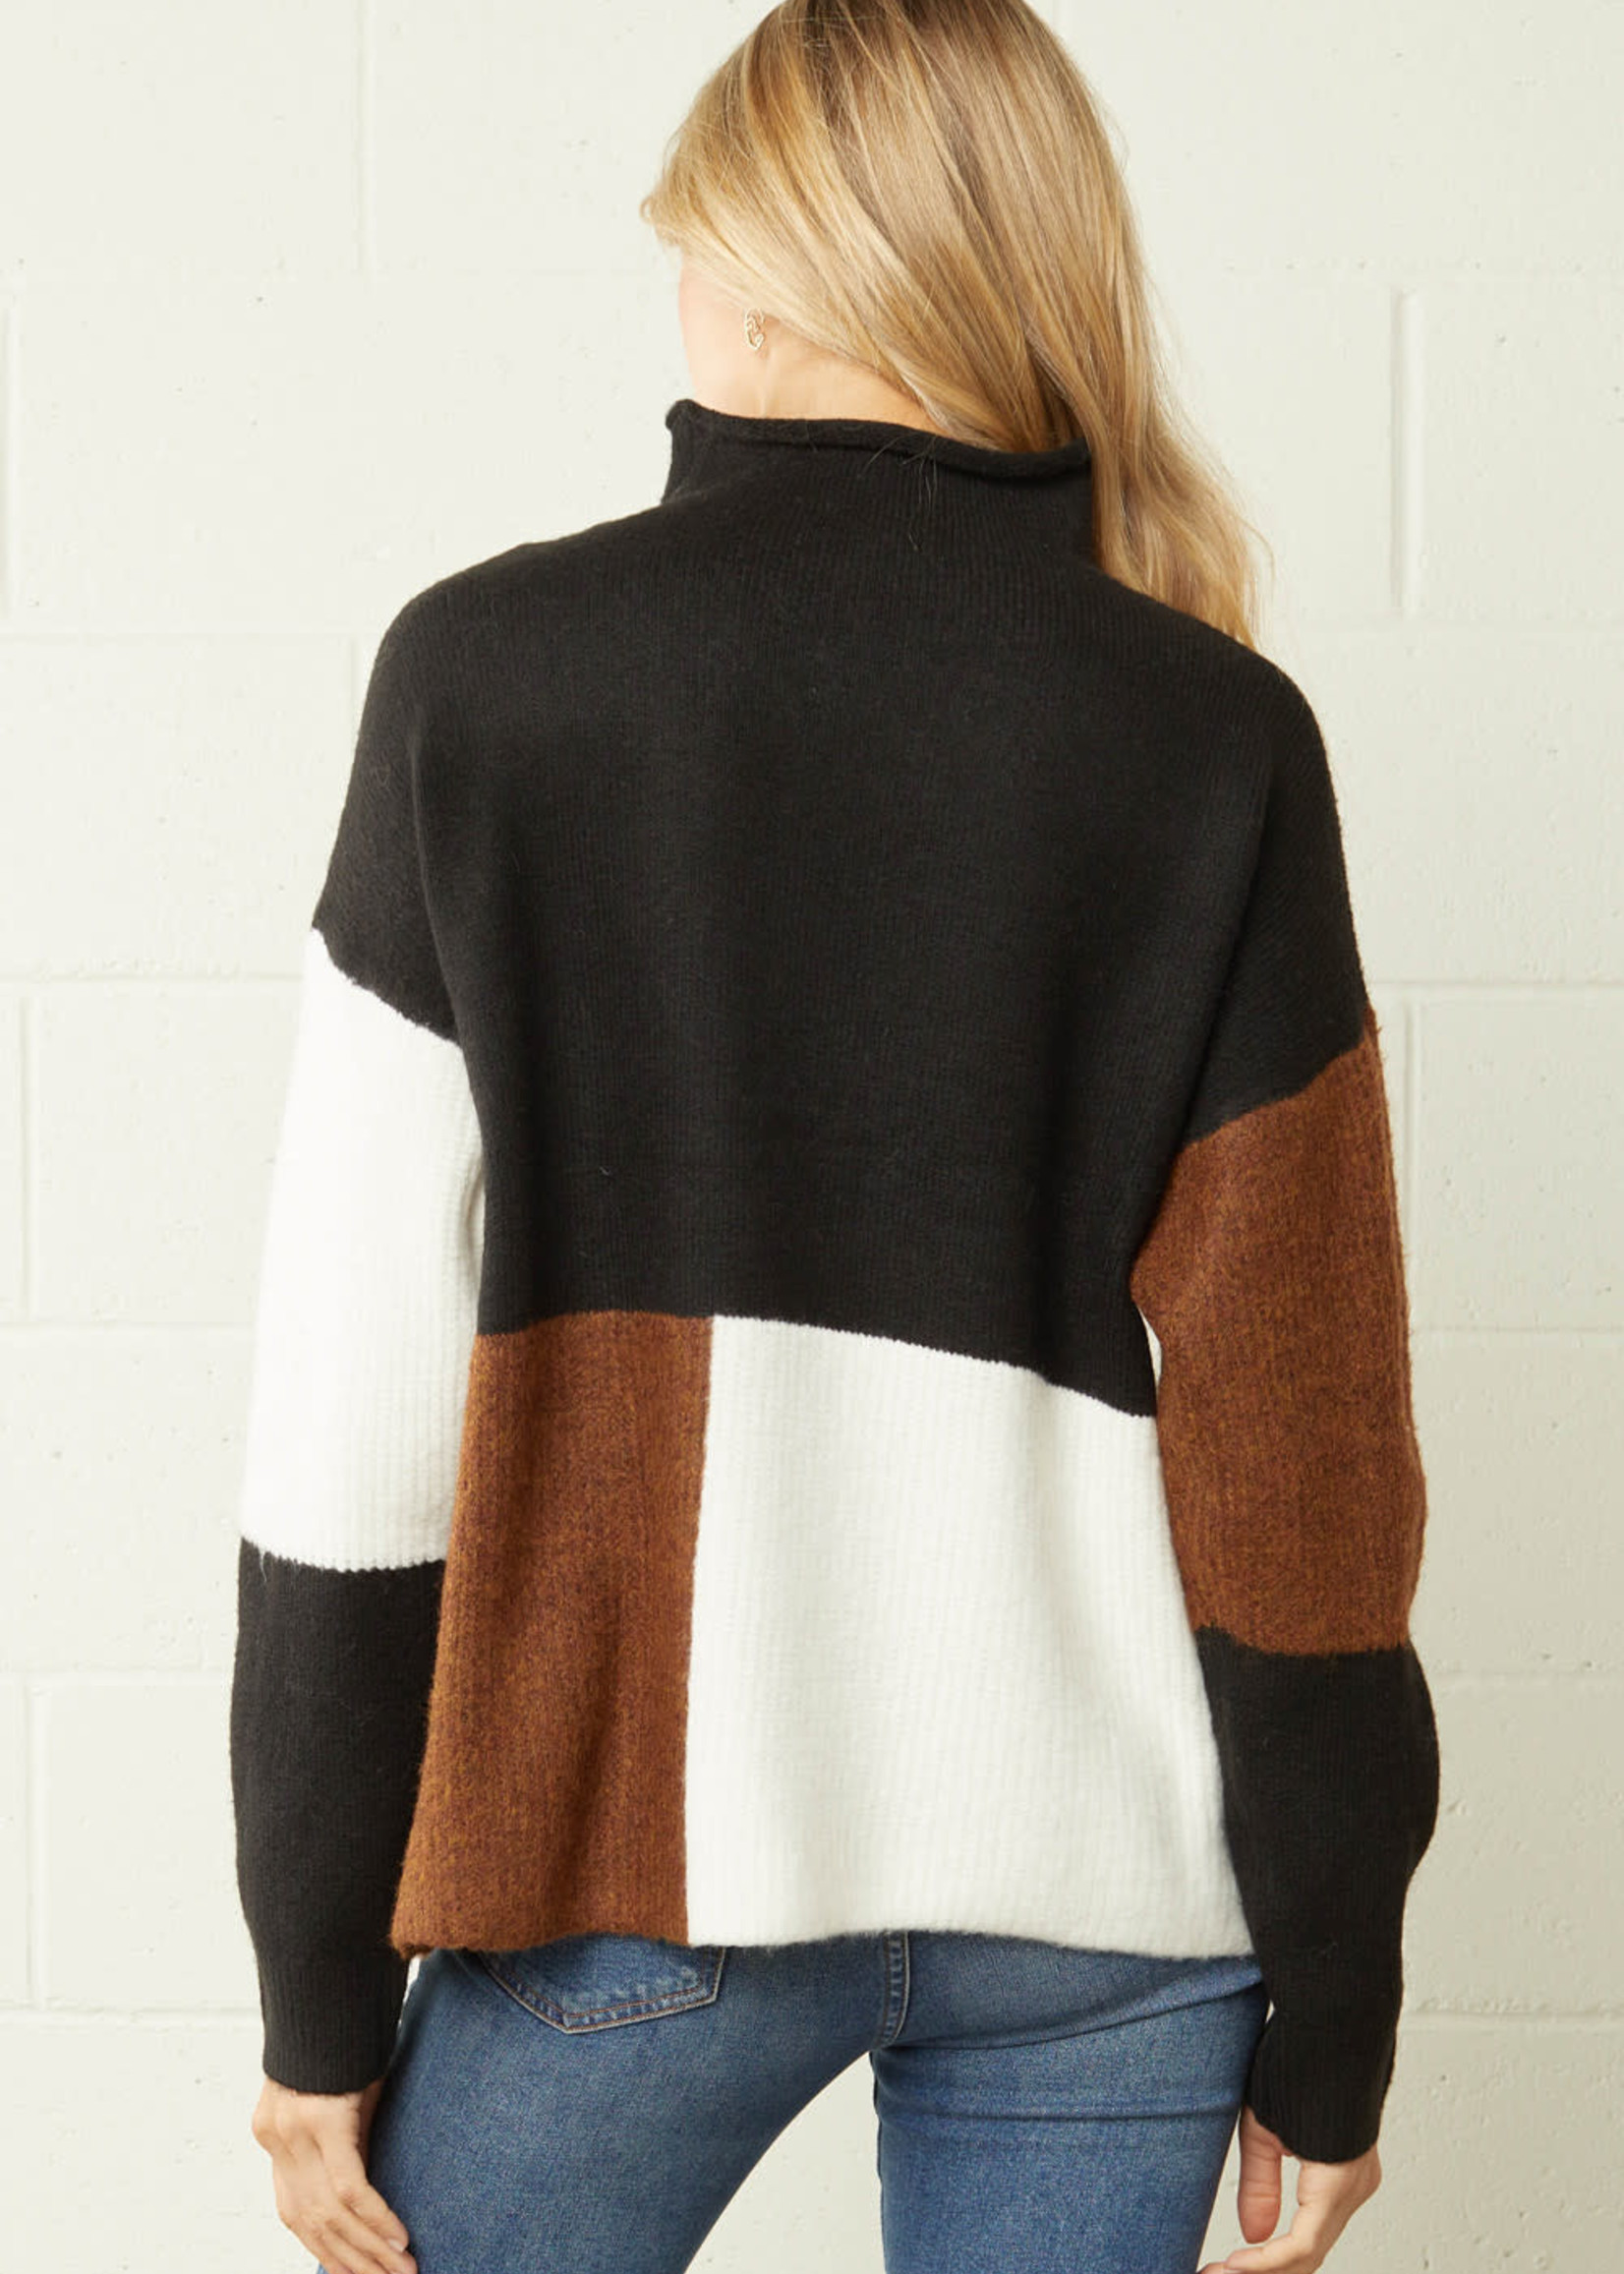 Cause We Can Colorblock Sweater (2 Colors)